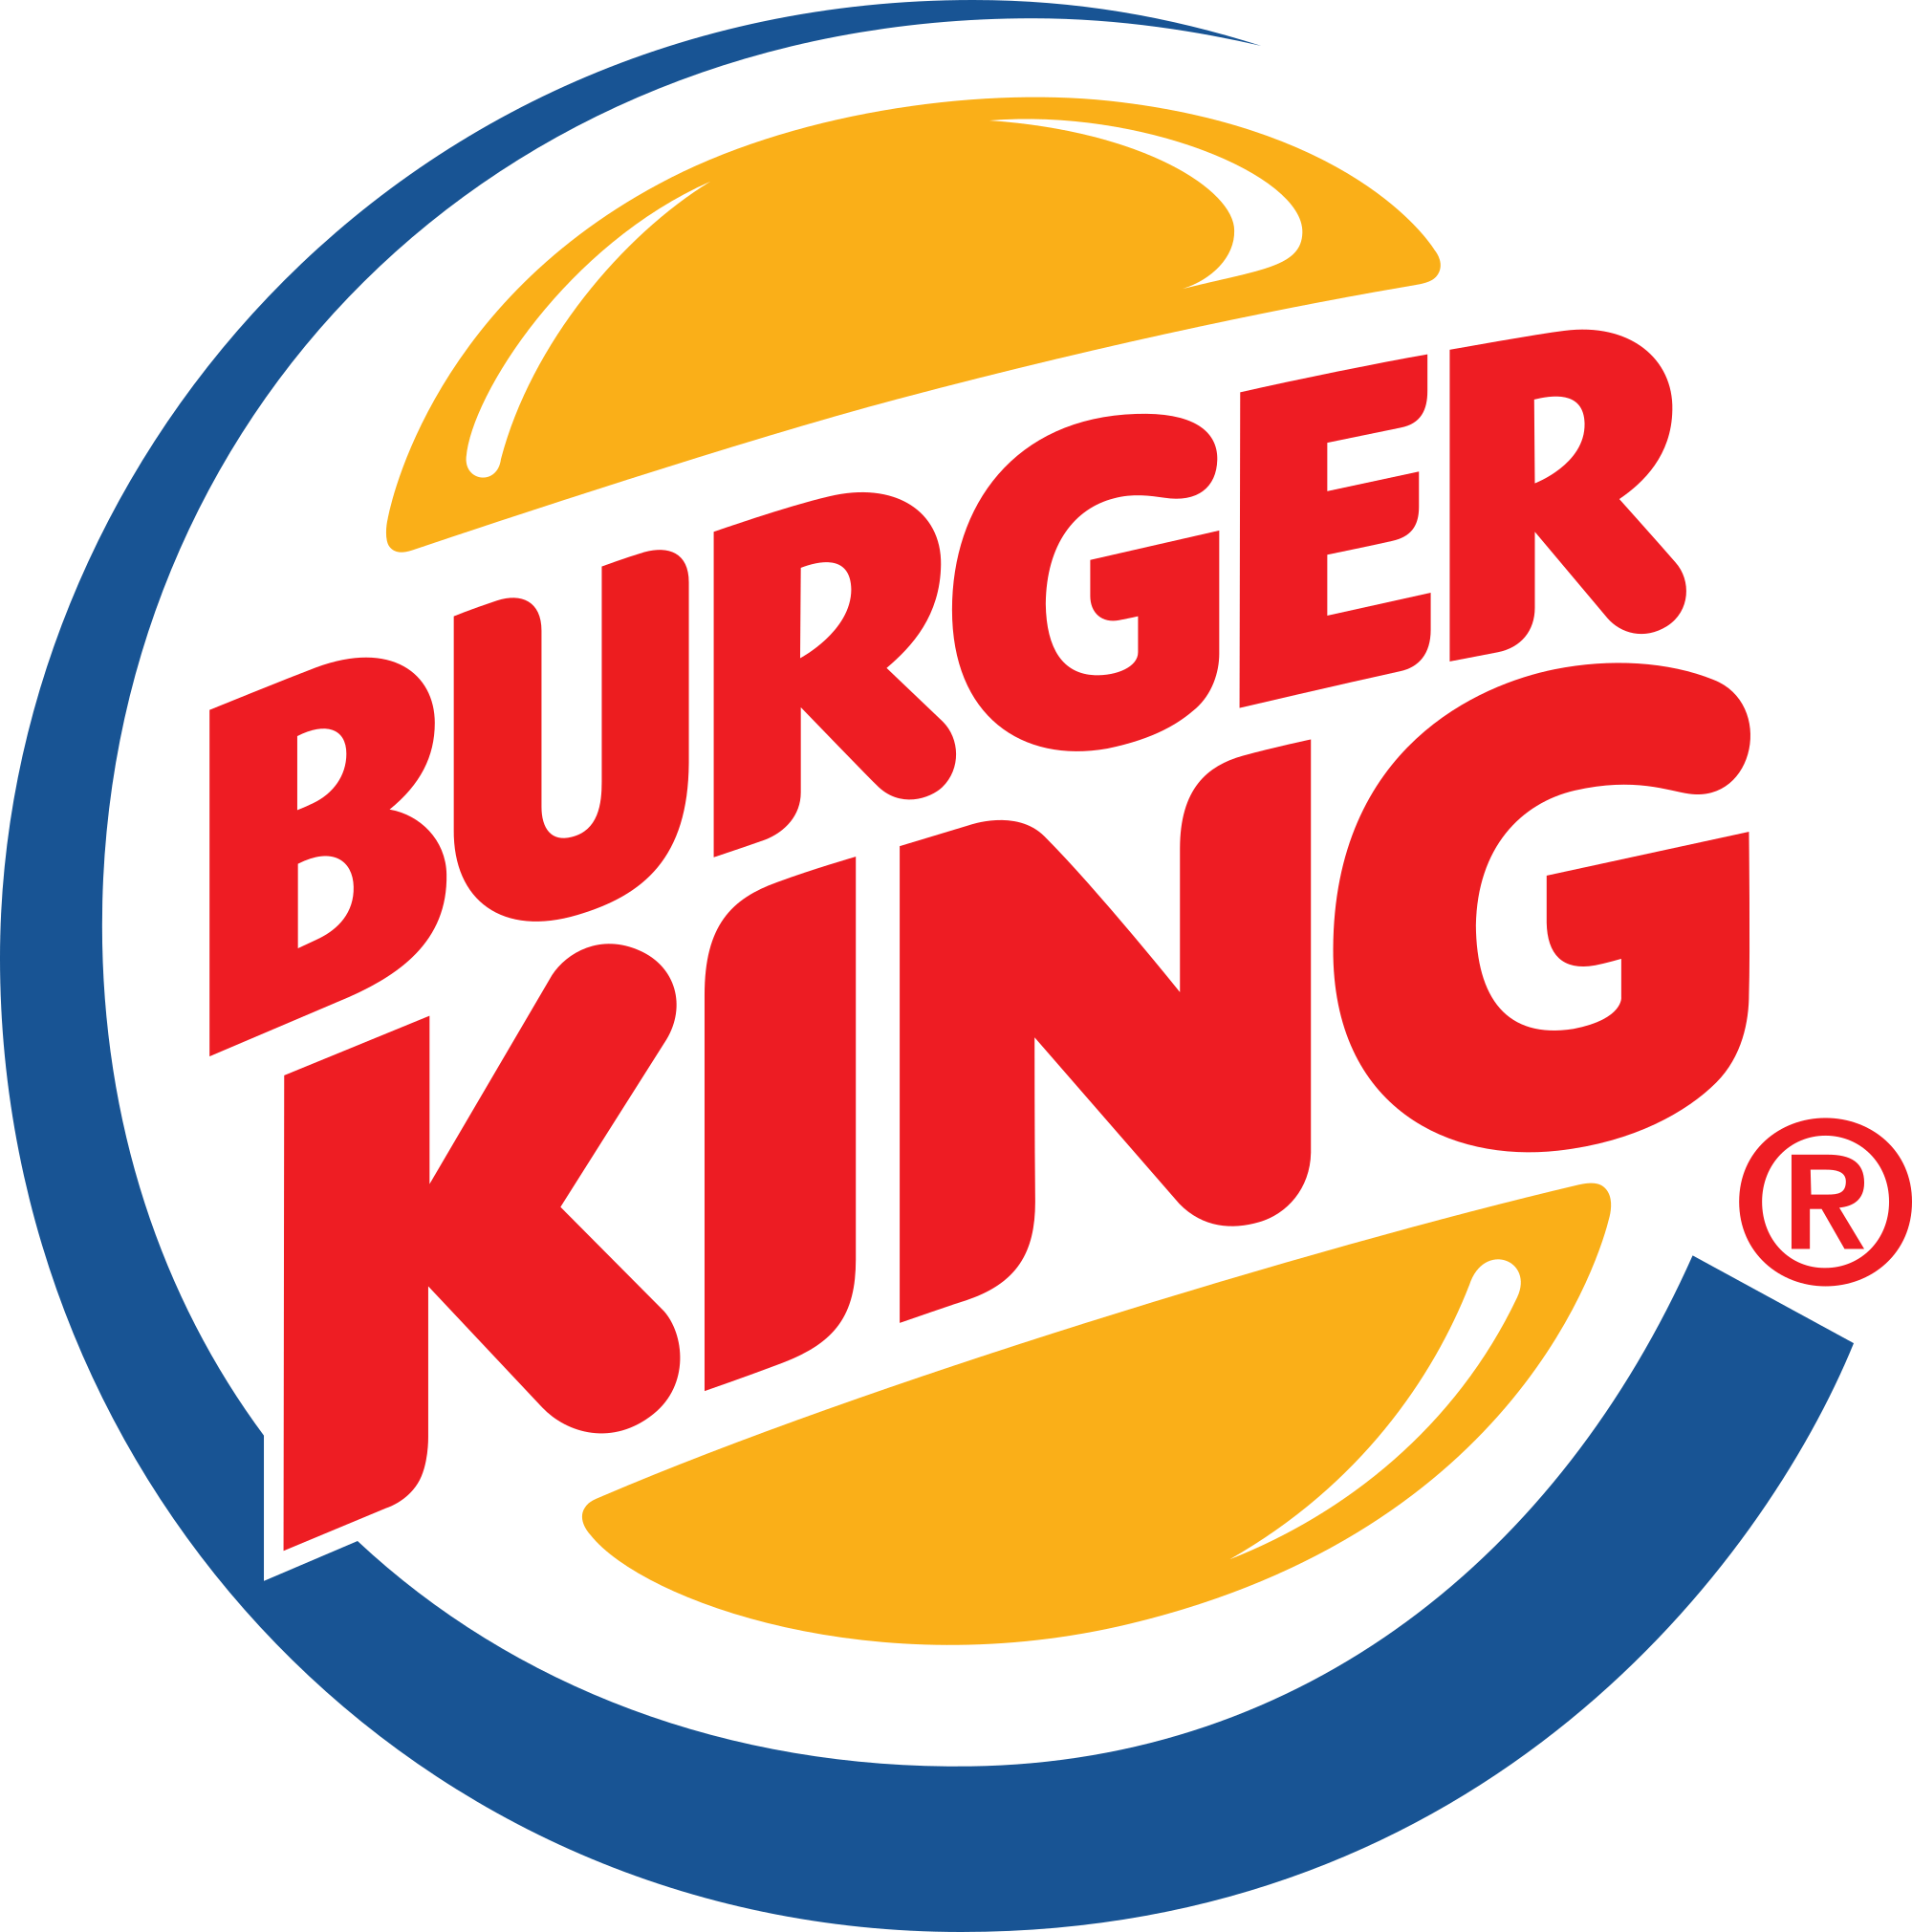 Burger King Logo - File:Burger King Logo.svg - Wikimedia Commons